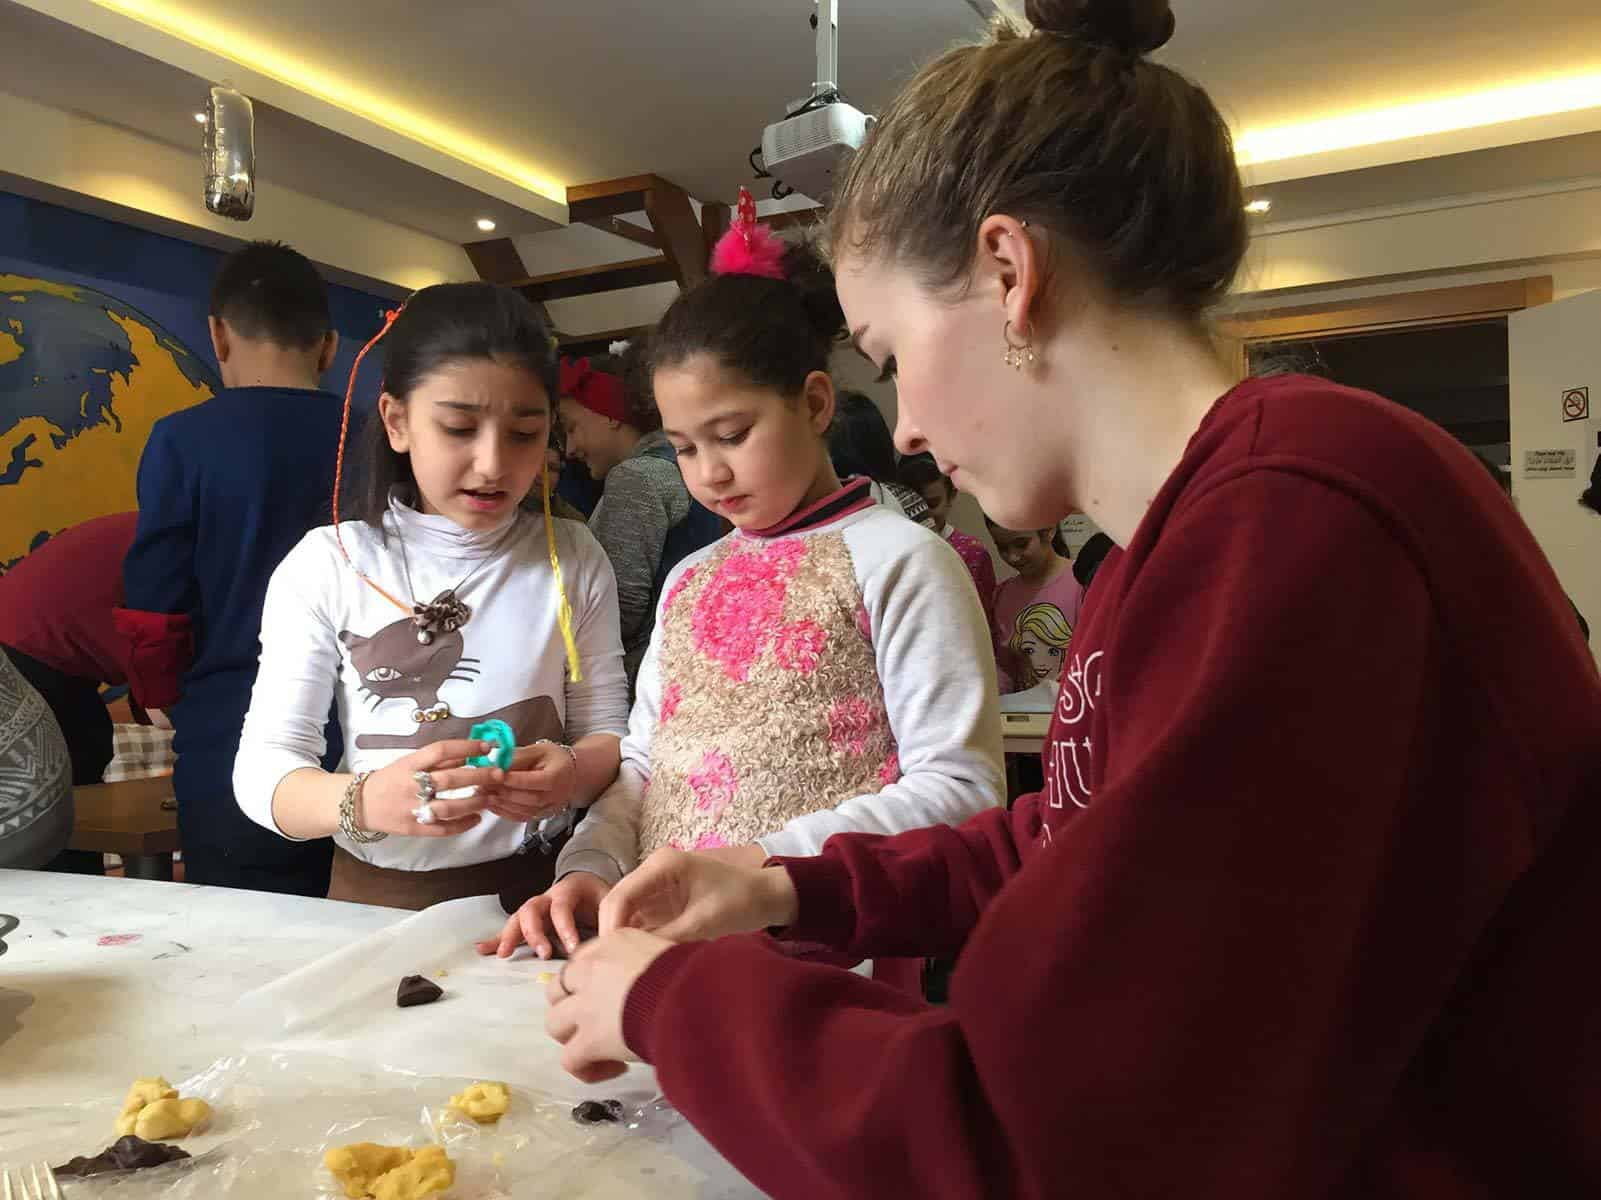 german-volunteer-helps-volunteer-work-syrian-refugees-istanbul-turkey